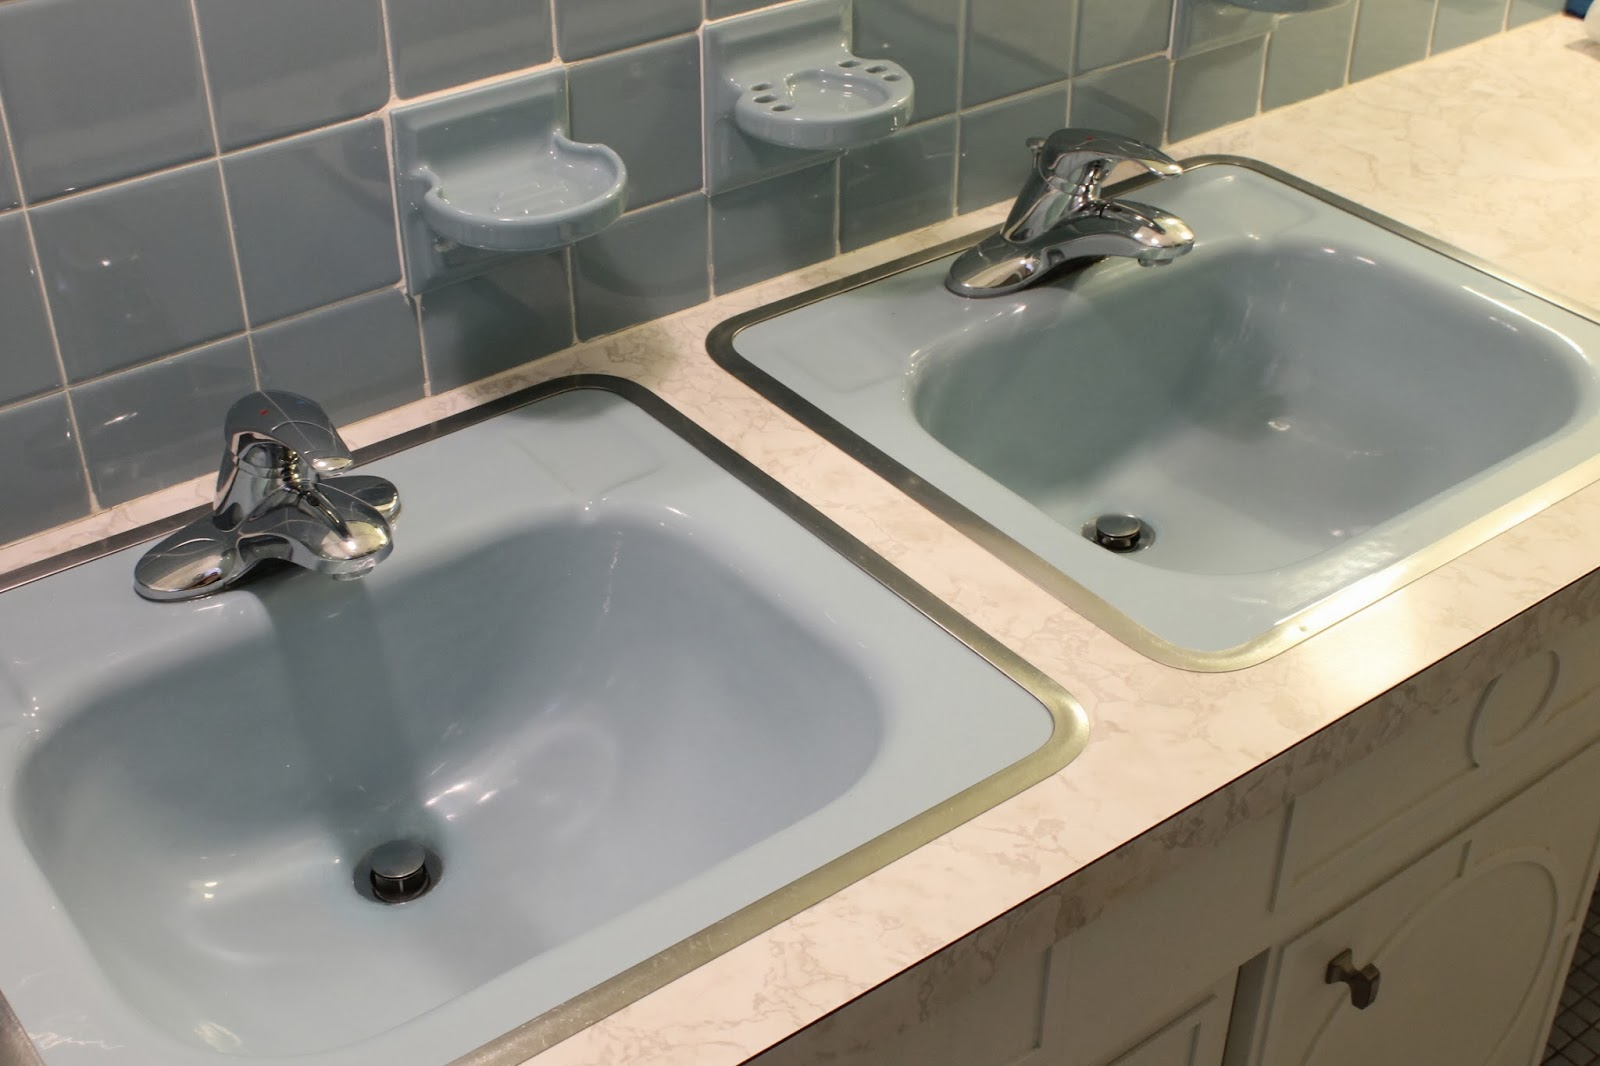 GORGEOUS SHINY THINGS: How to Repair a Porcelain Sink